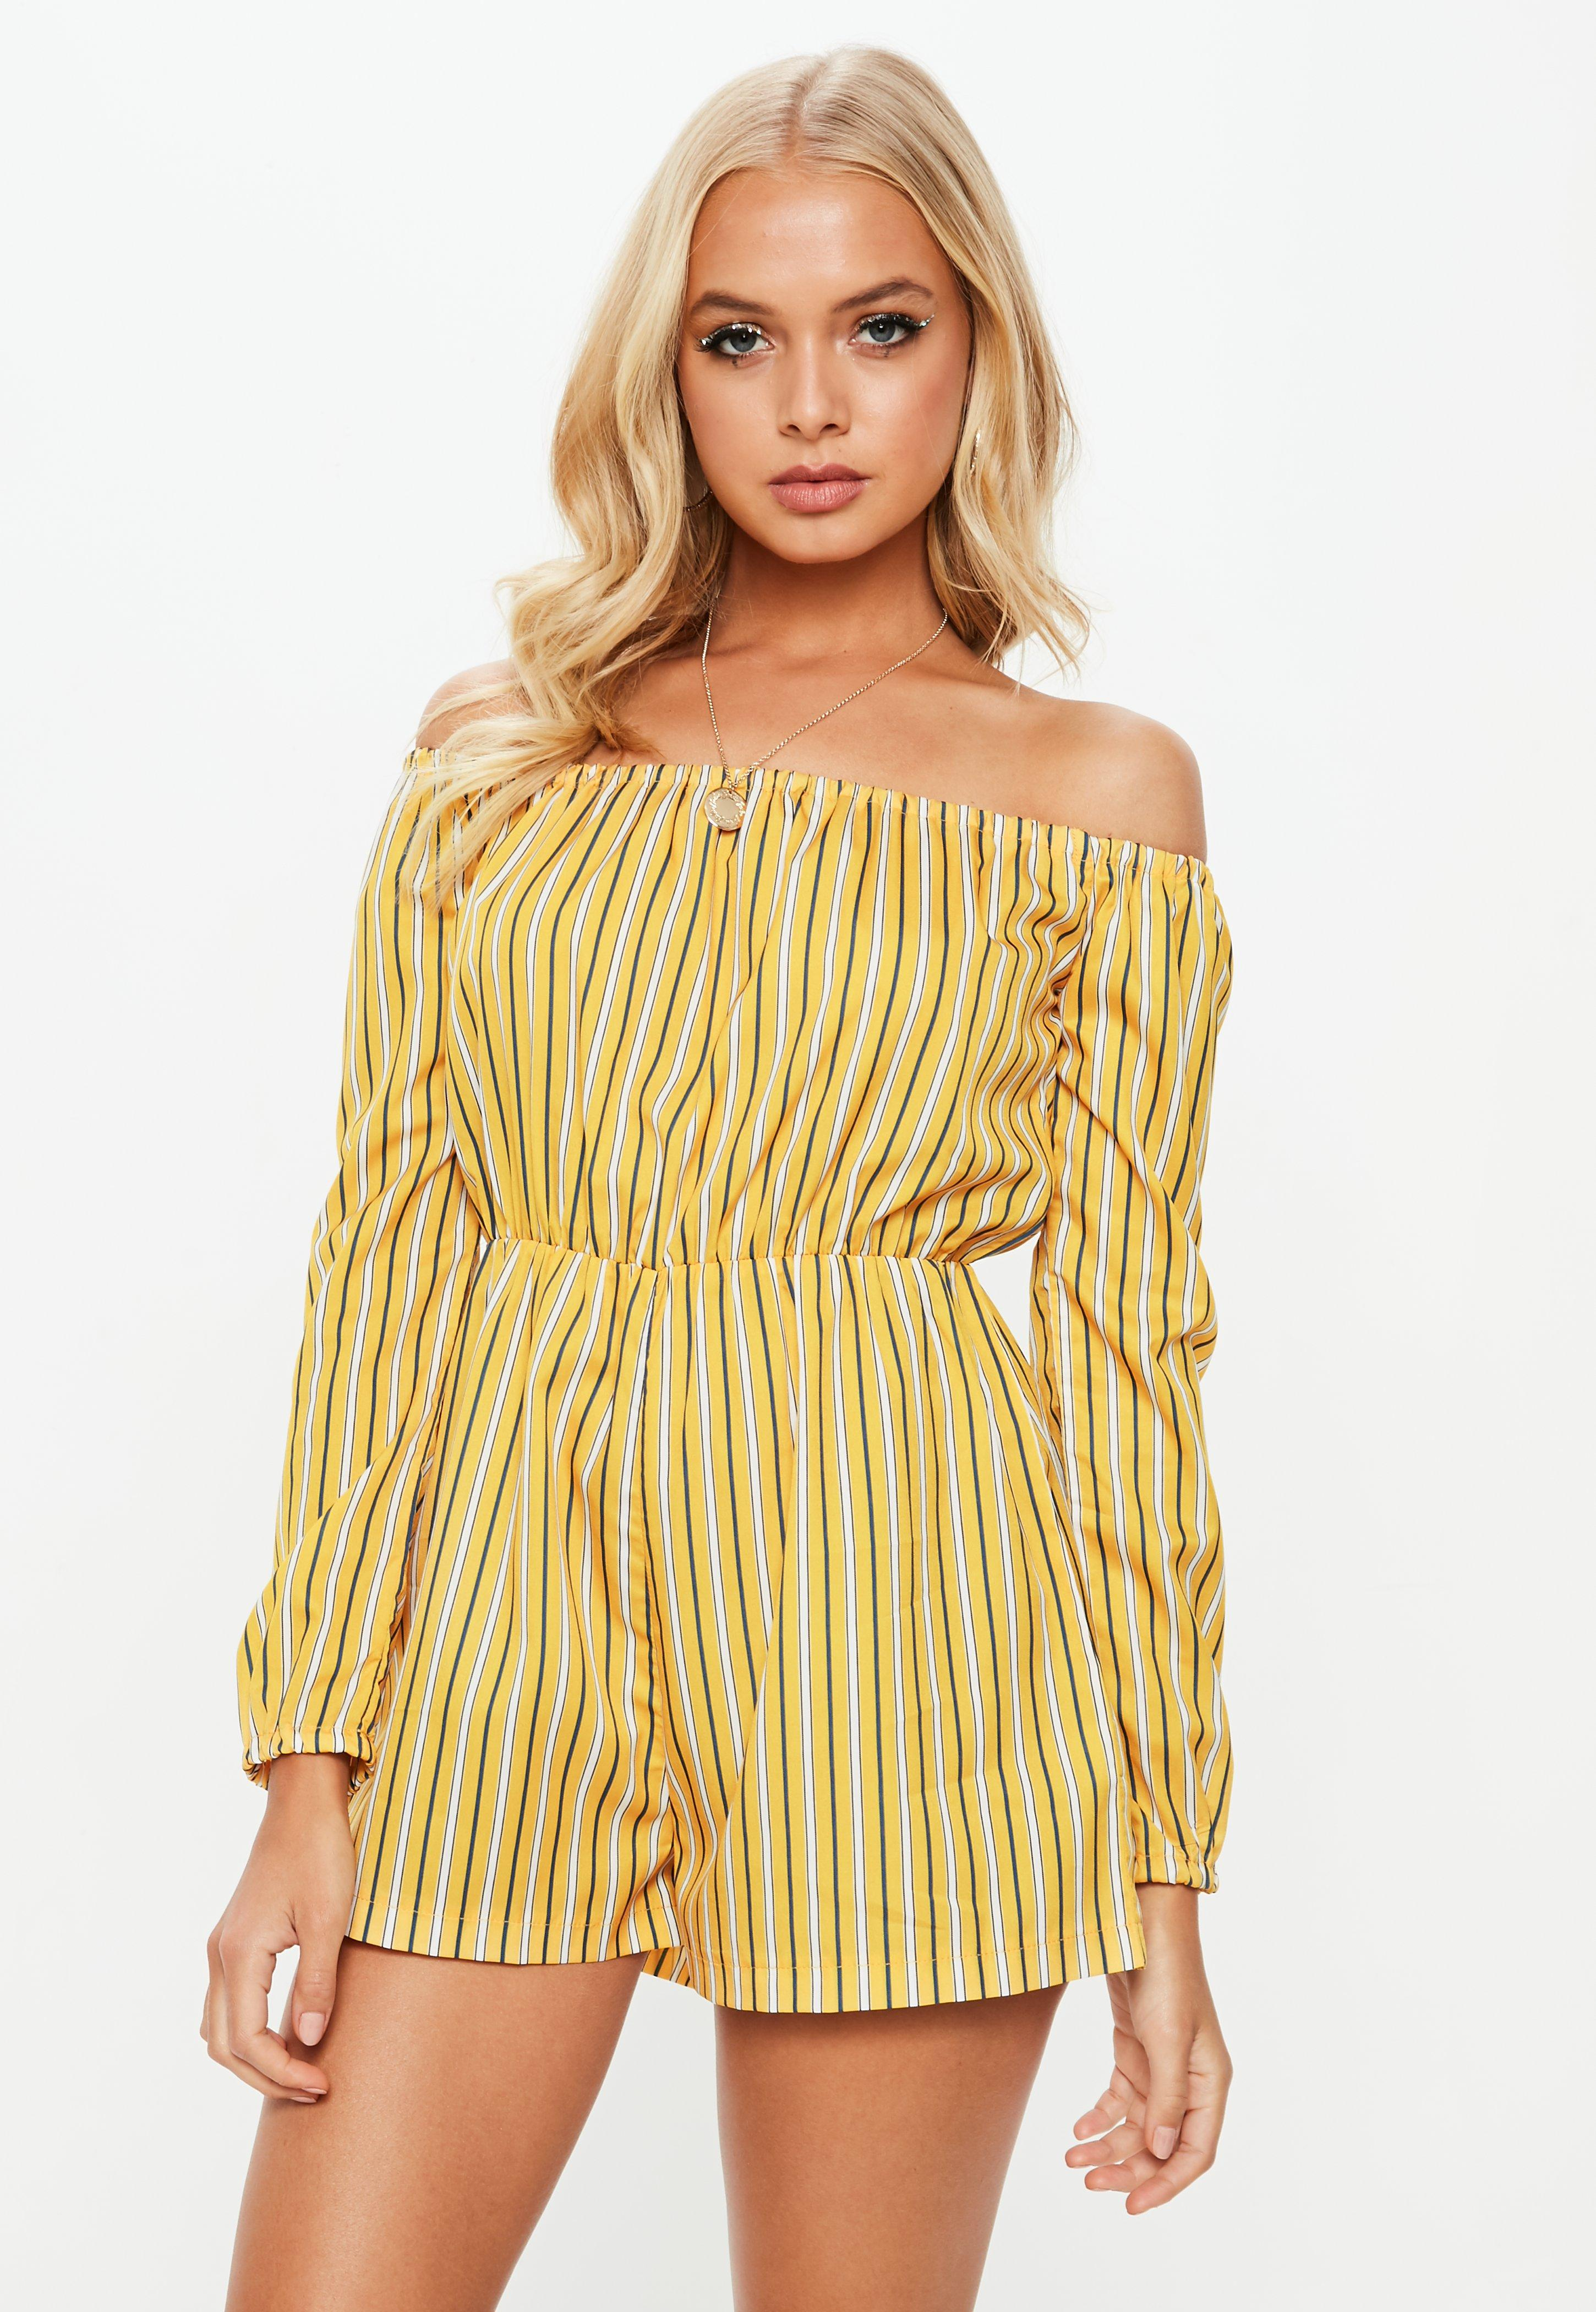 80c25ffe7a Lyst - Missguided Yellow Printed Stripe Bardot Romper in Yellow